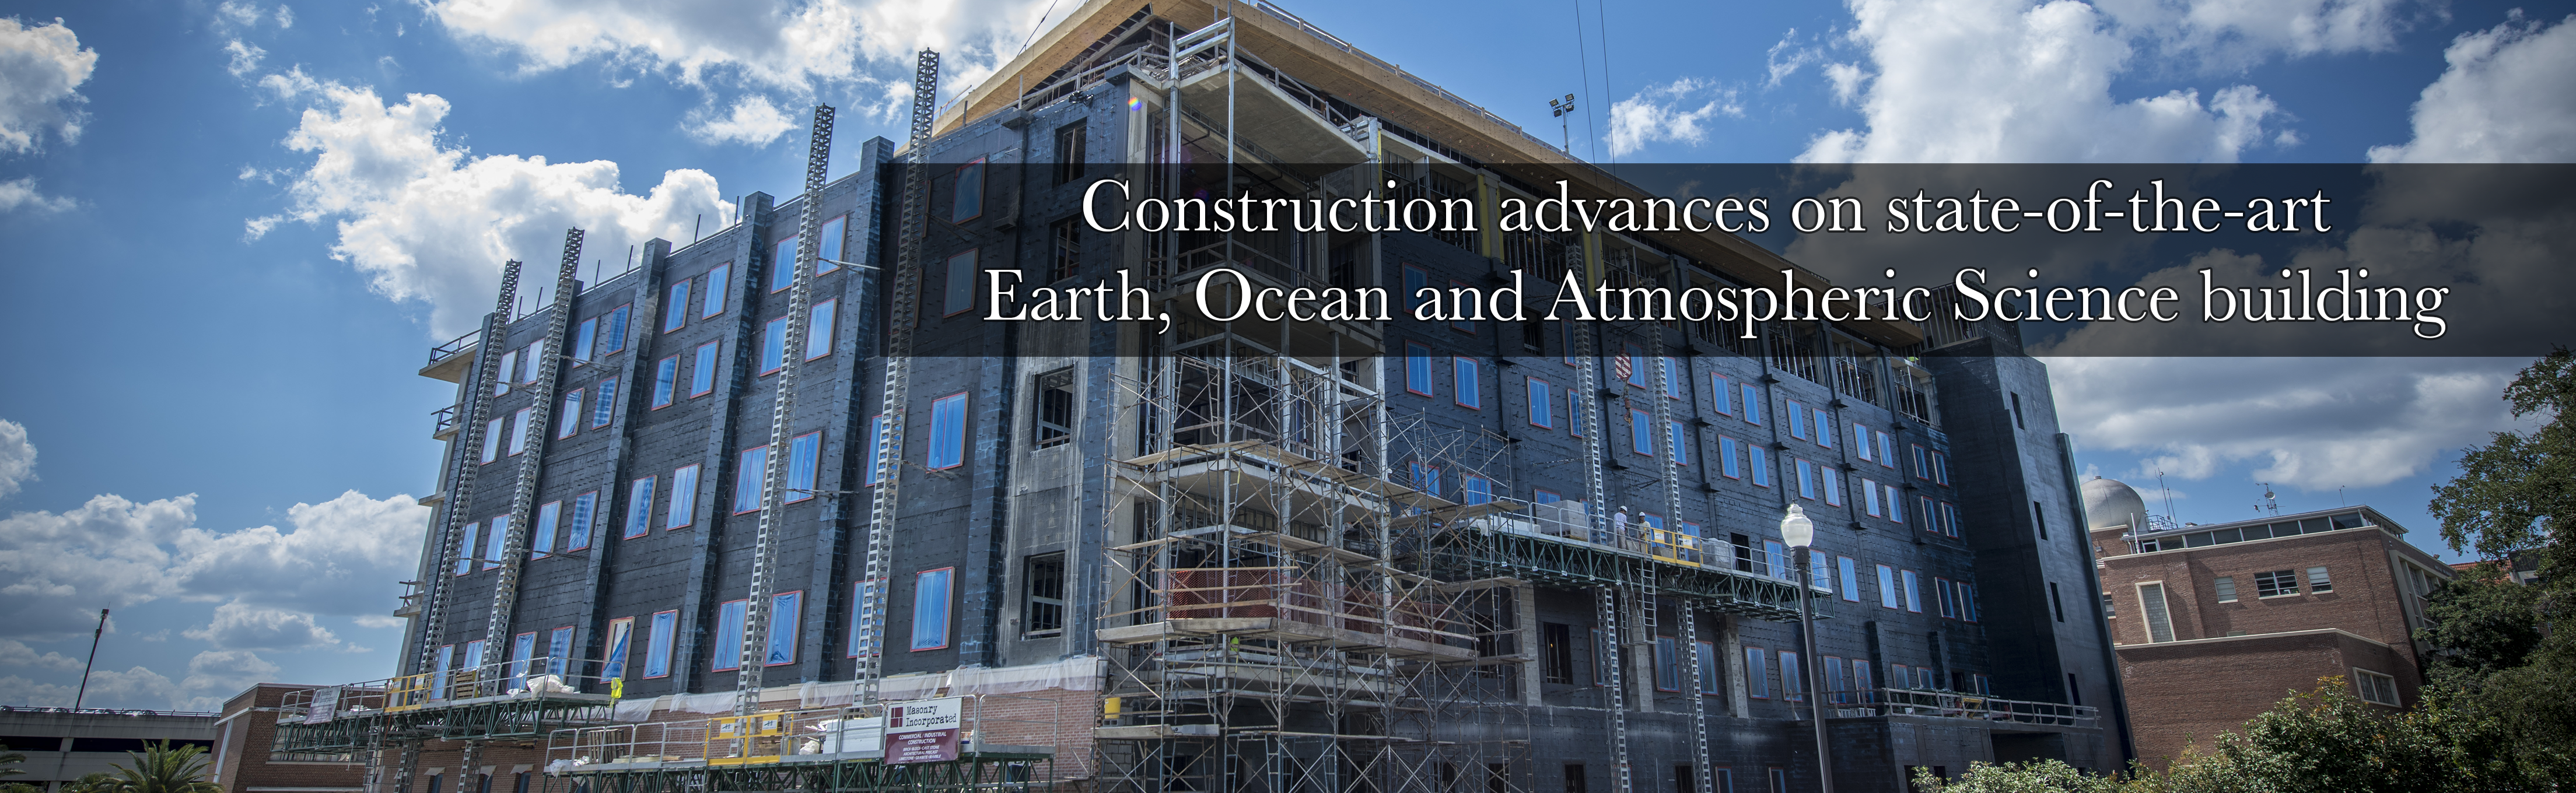 Construction advances on state-of-the-art Earth, Ocean and Atmospheric Science building